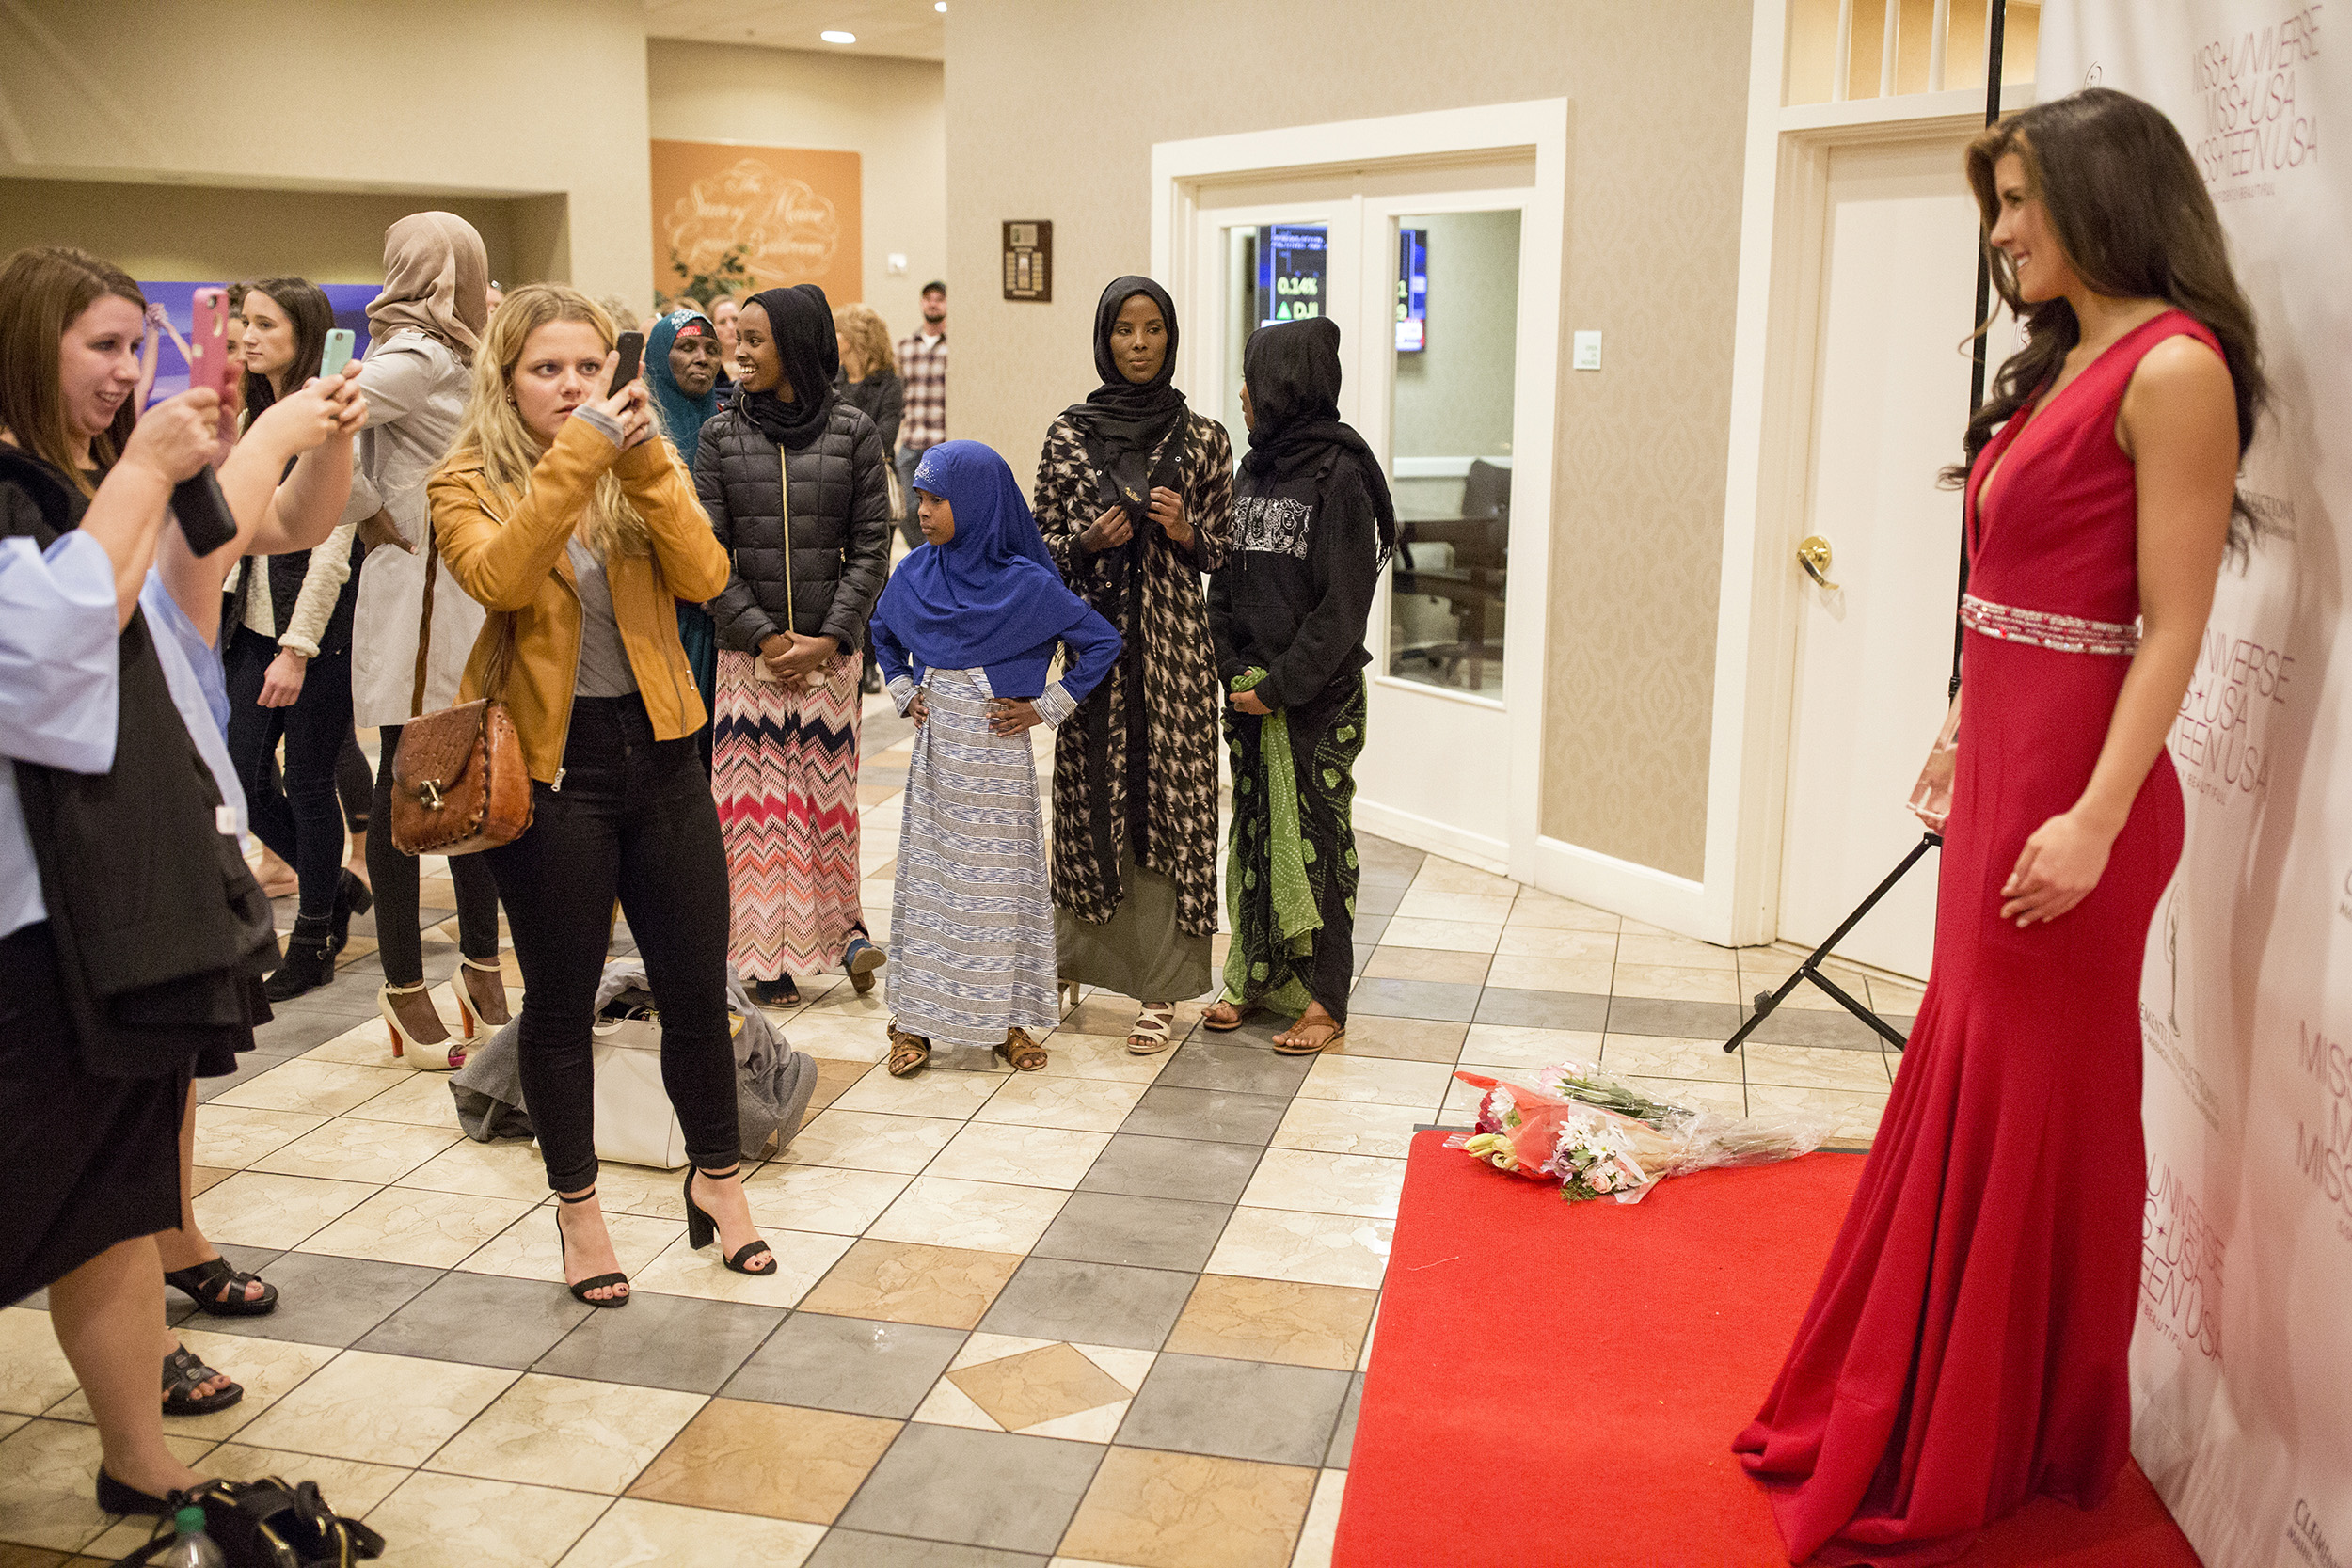 "Ahmed and her family watch as Ahmed's roommate Kaitlyn Beckwith, who was second runner up, has her photo taken in front of the Miss Maine USA sign.  ""I would love to see a Muslim girl win the pageant in the state of Maine. To go out there and say: 'This is who I am. I'm not going to change who I am, but I belong here. I have the same dreams like all of these girls, but I want to dress modest and respect my culture and religion,'"" Ahmed said. ""I want to see that day happen."""